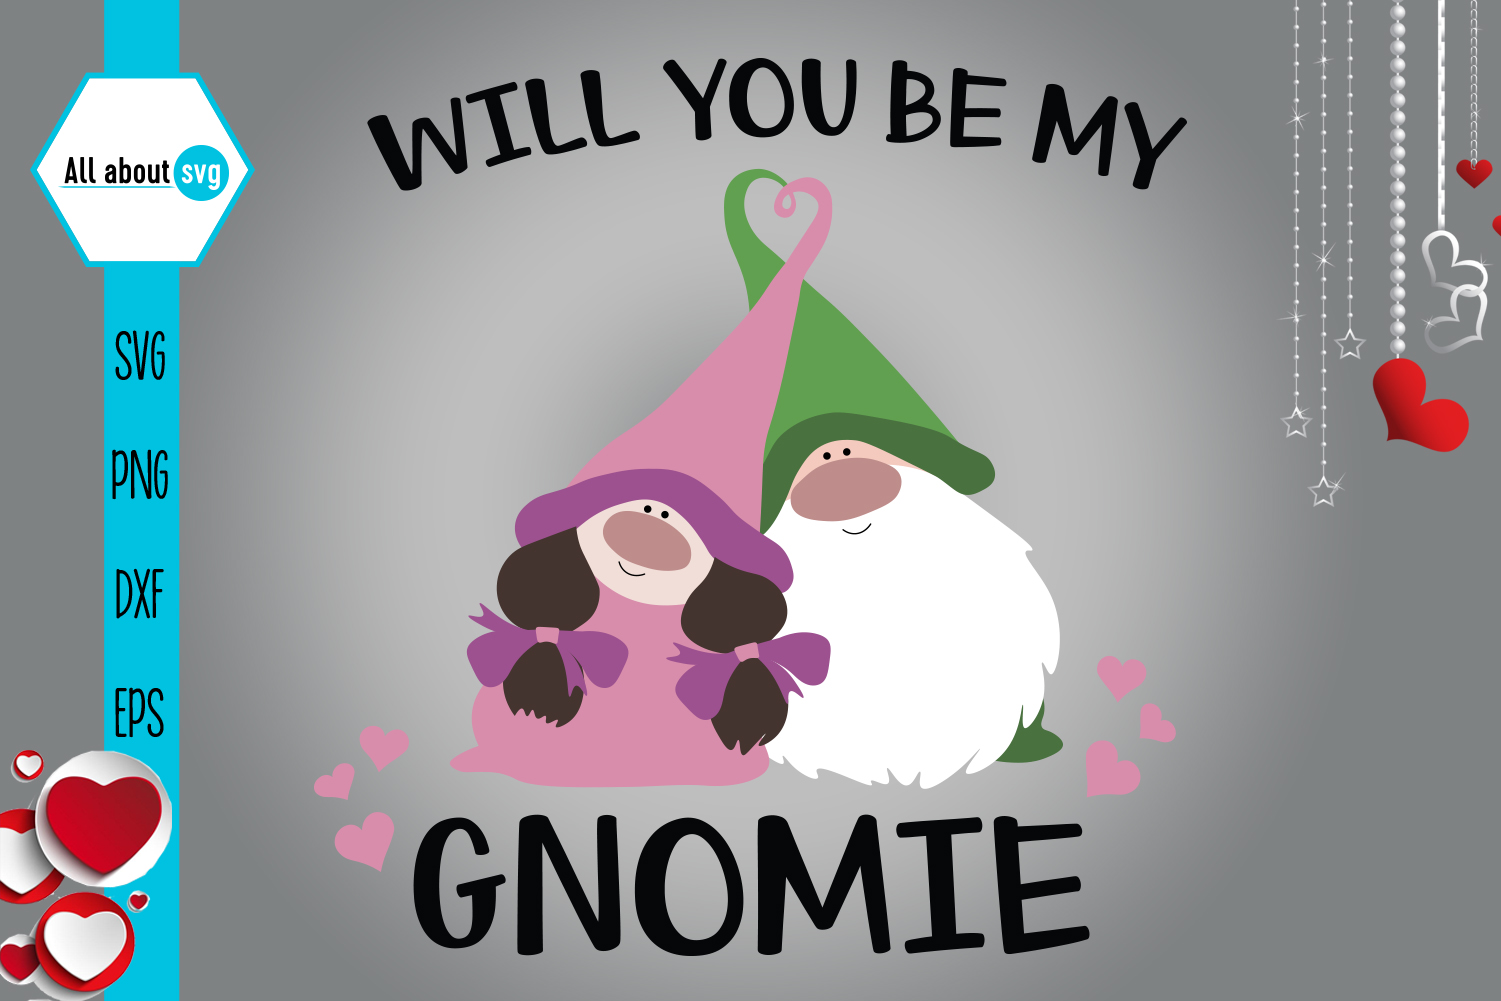 Will You Be My Gnomie Svg, Valentine's Gnomies Svg example image 2